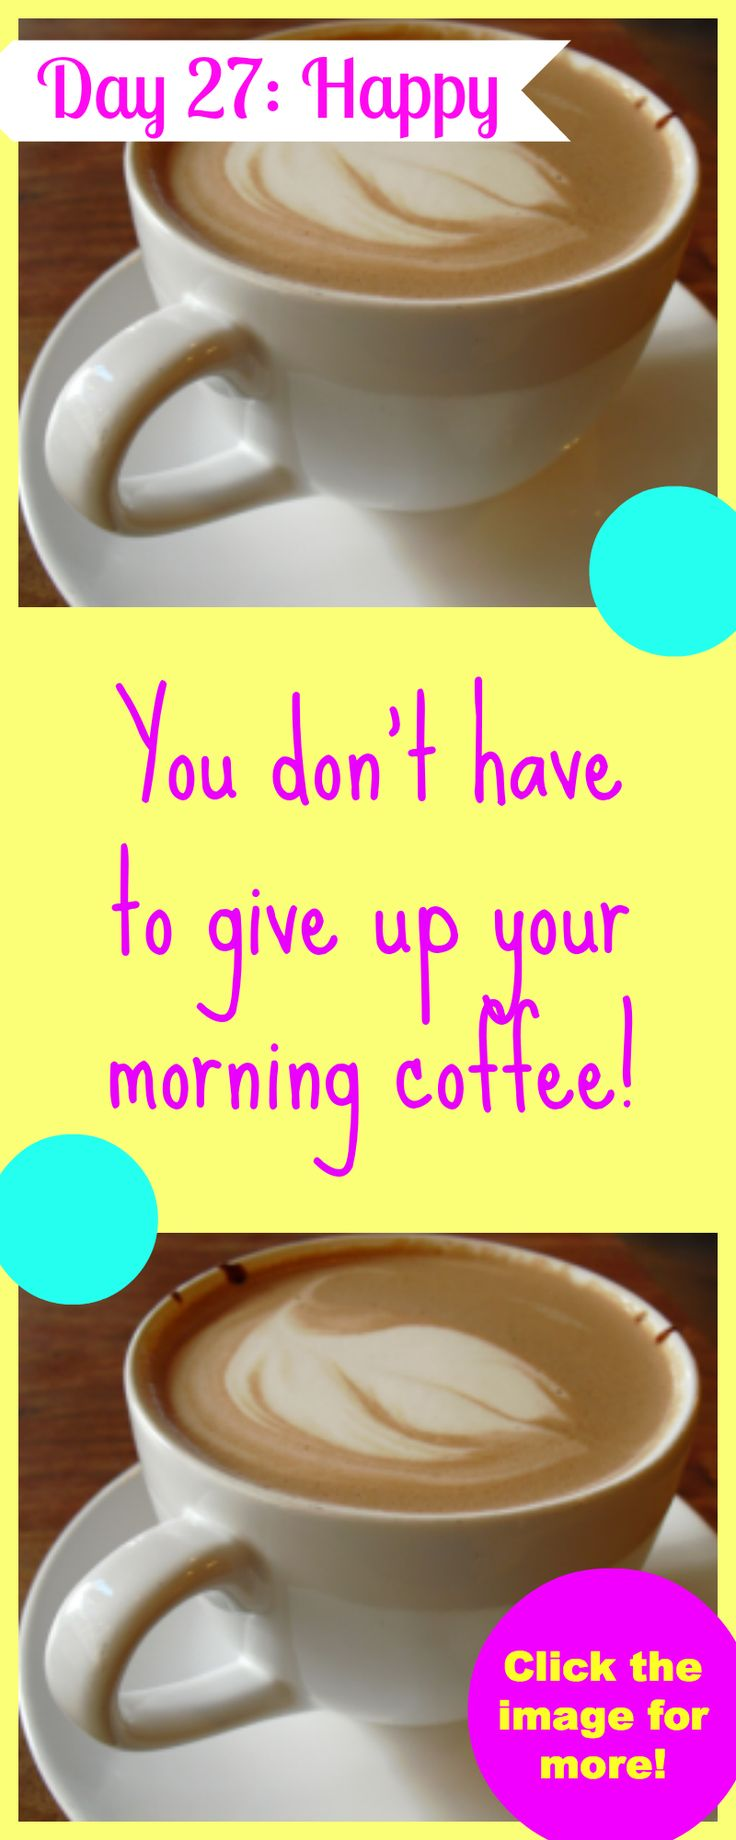 GUESS WHAT! Weight loss doesn't mean you have to give up your morning coffee ! Click the image to read more and comment below so I know how you are doing! On the home stretch of this challenge... LET'S GO!